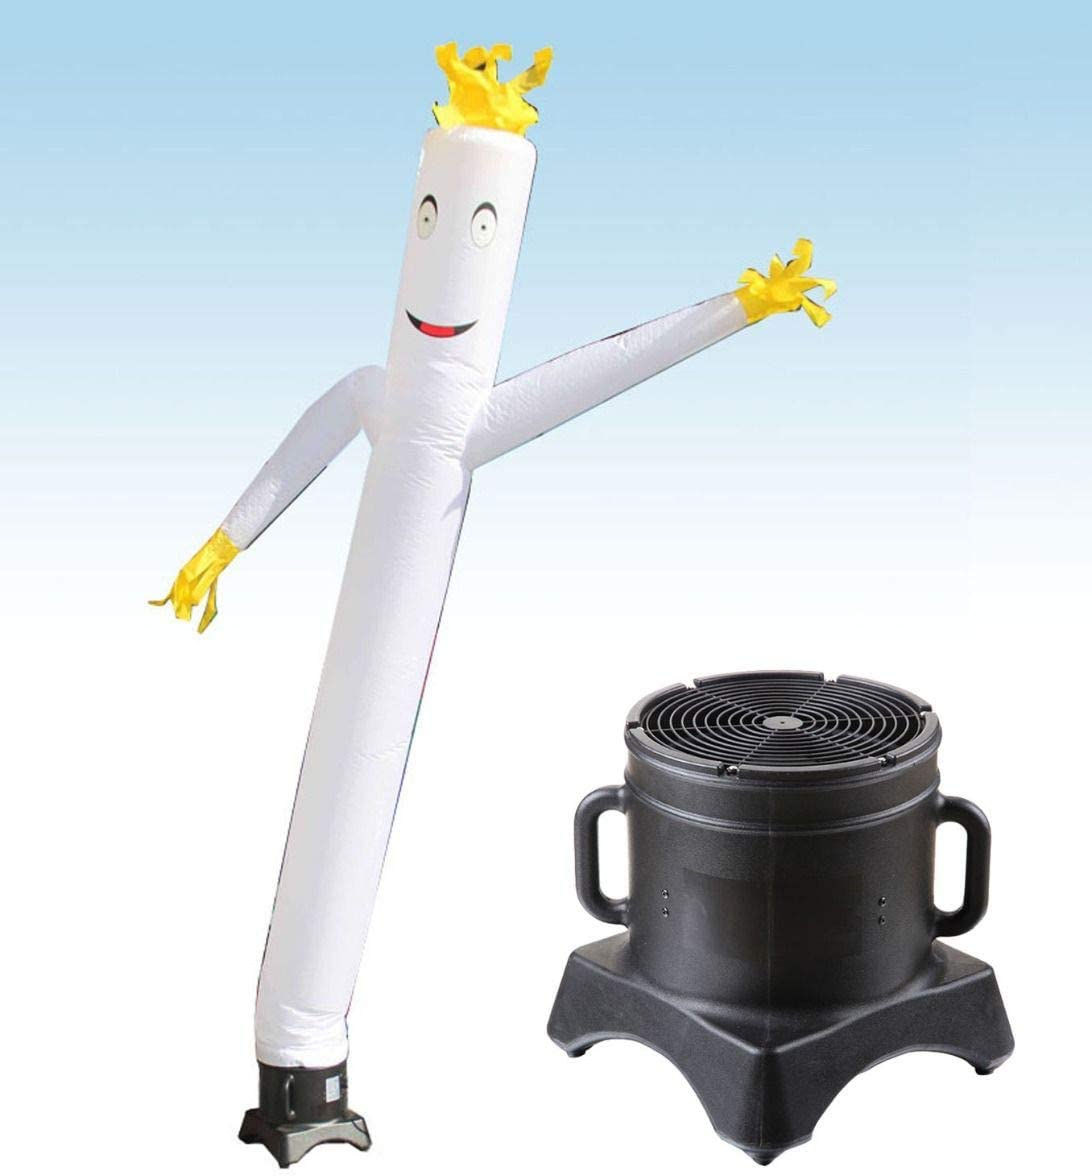 Includes 1//2HP Blower for Advertising Fun Wacky Waving Inflatable Arm Flailing Tube Man 12 x 12 Blue Dancing Fly Guy Promotion and Entertainment